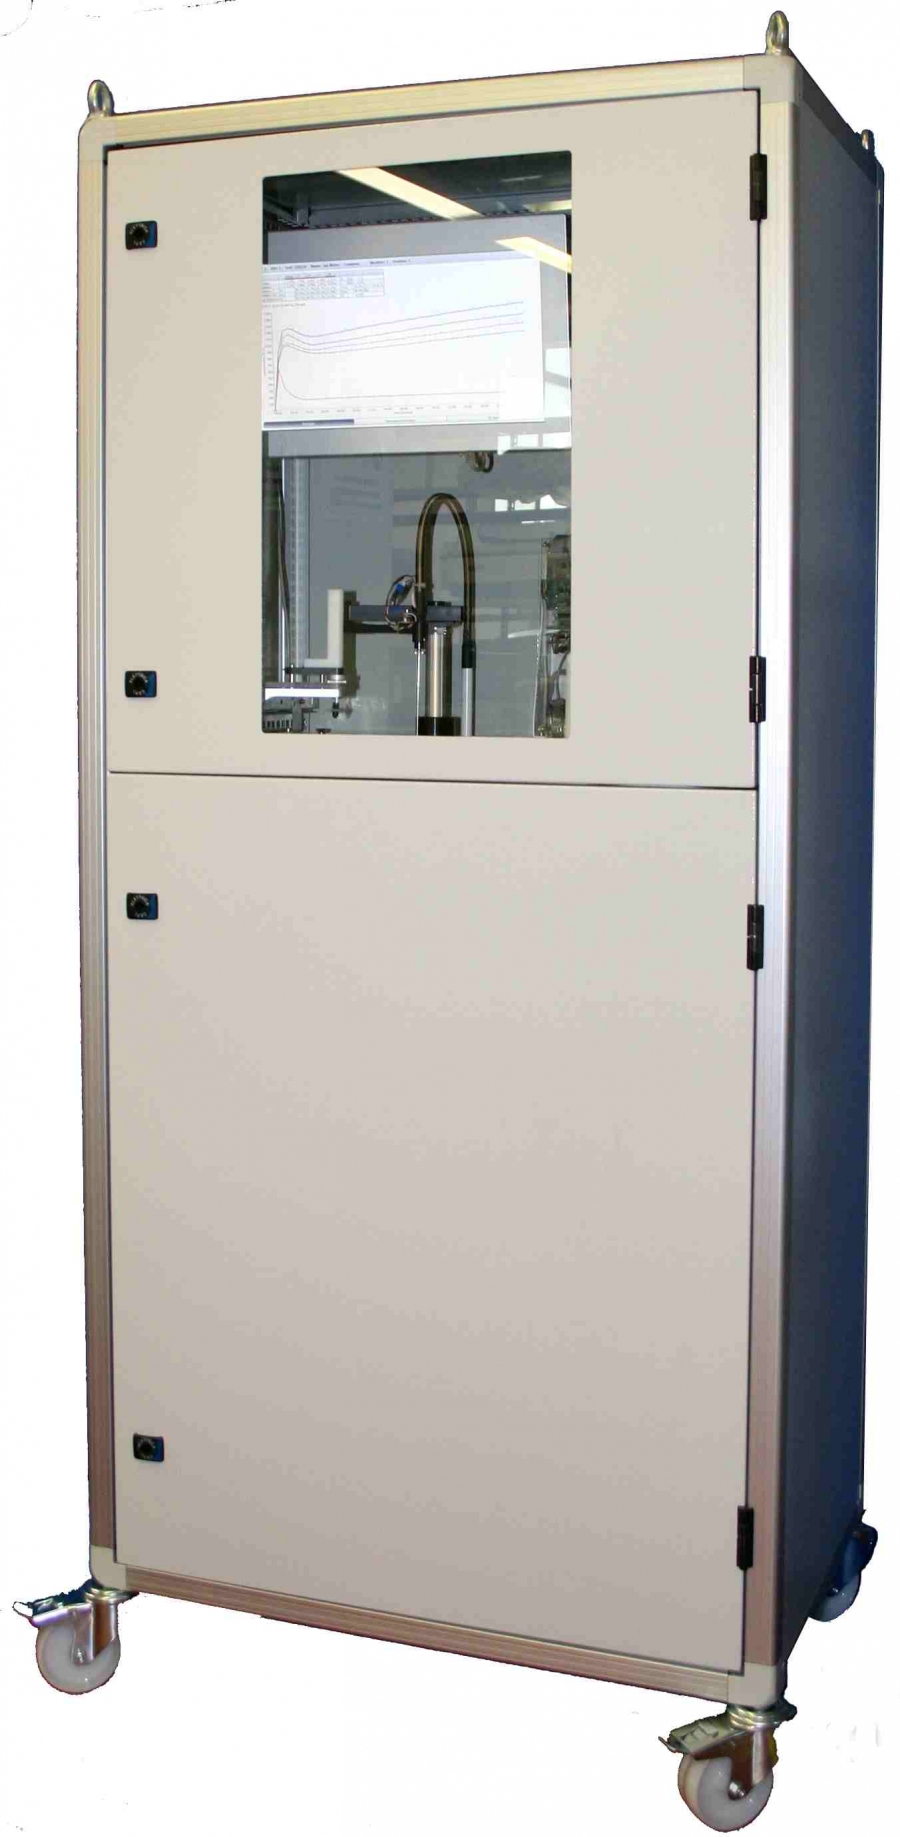 SYSTEA - Model EASYCHEM COLI online - Total coliforms & E.coli analyzer